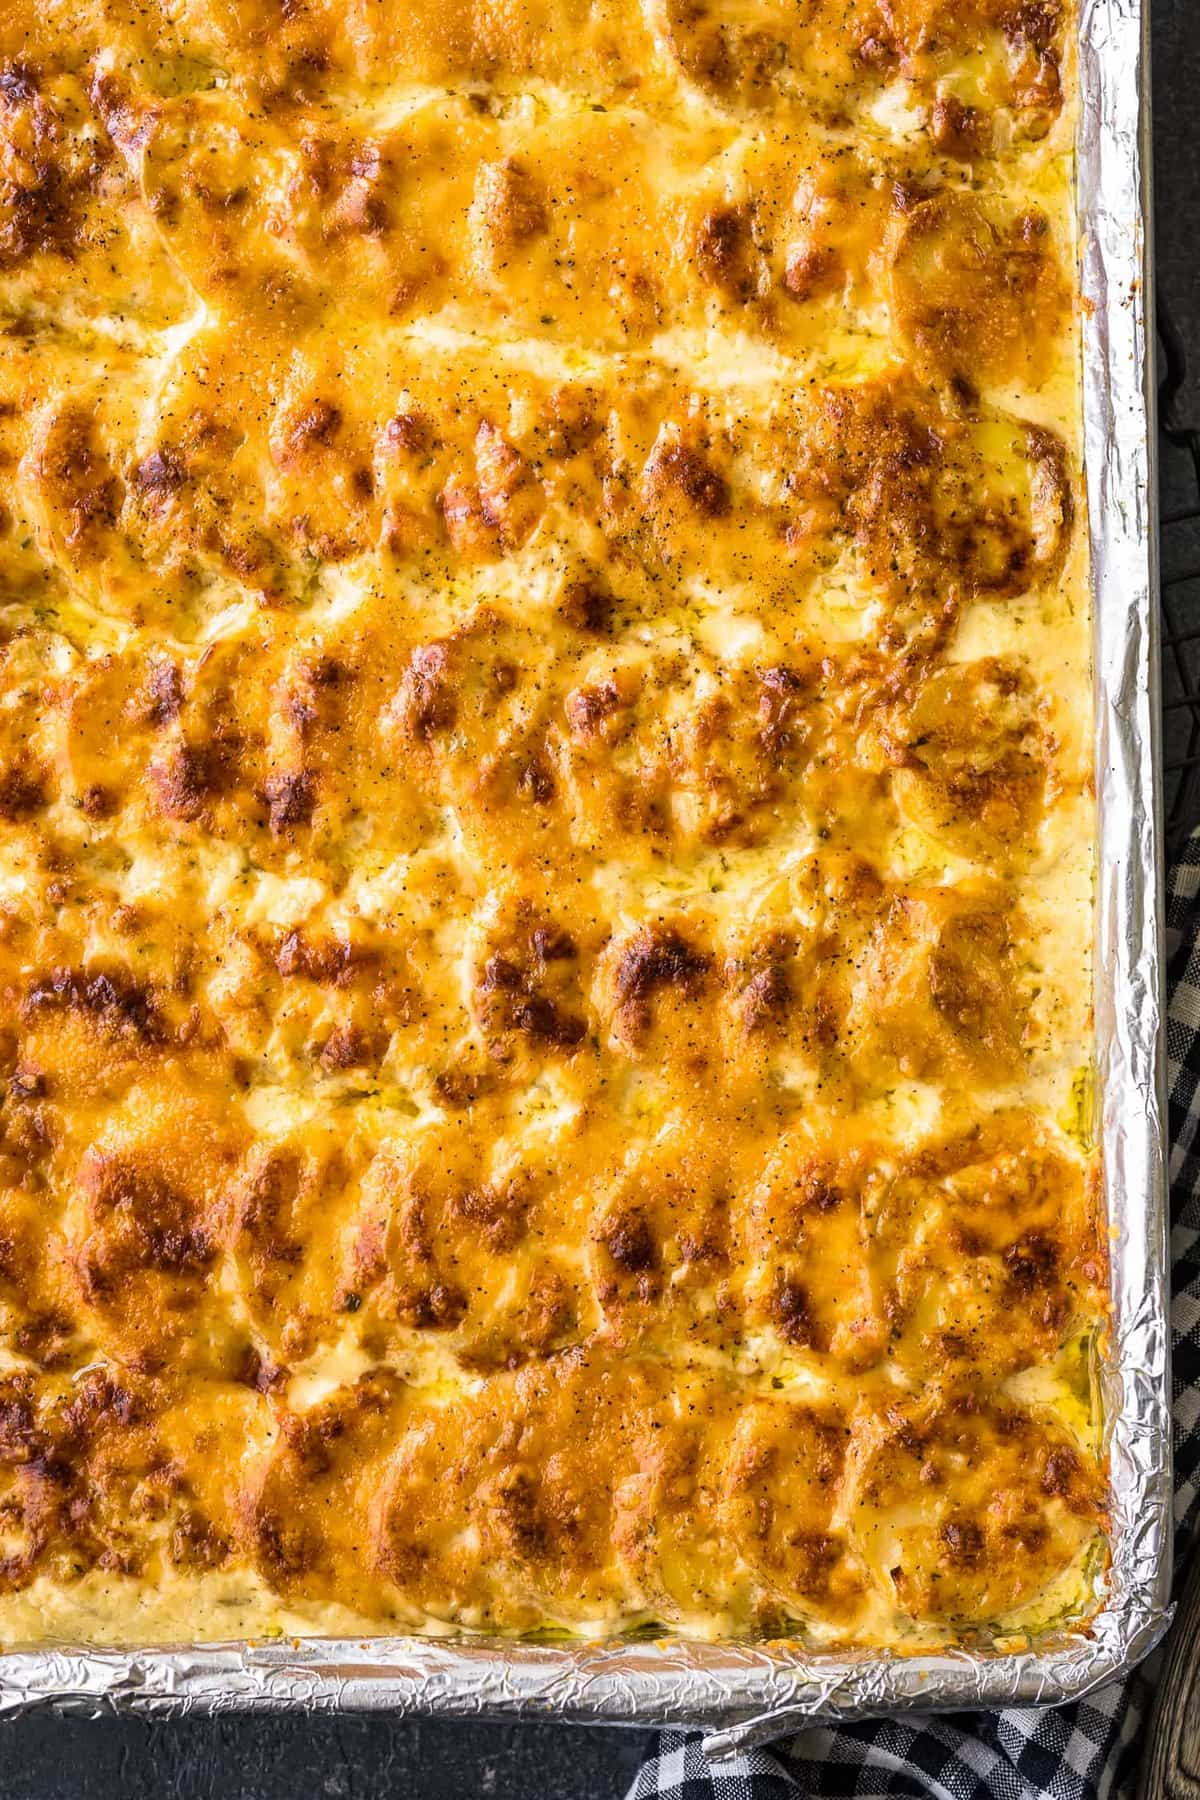 scalloped potatoes baked in a sheet pan